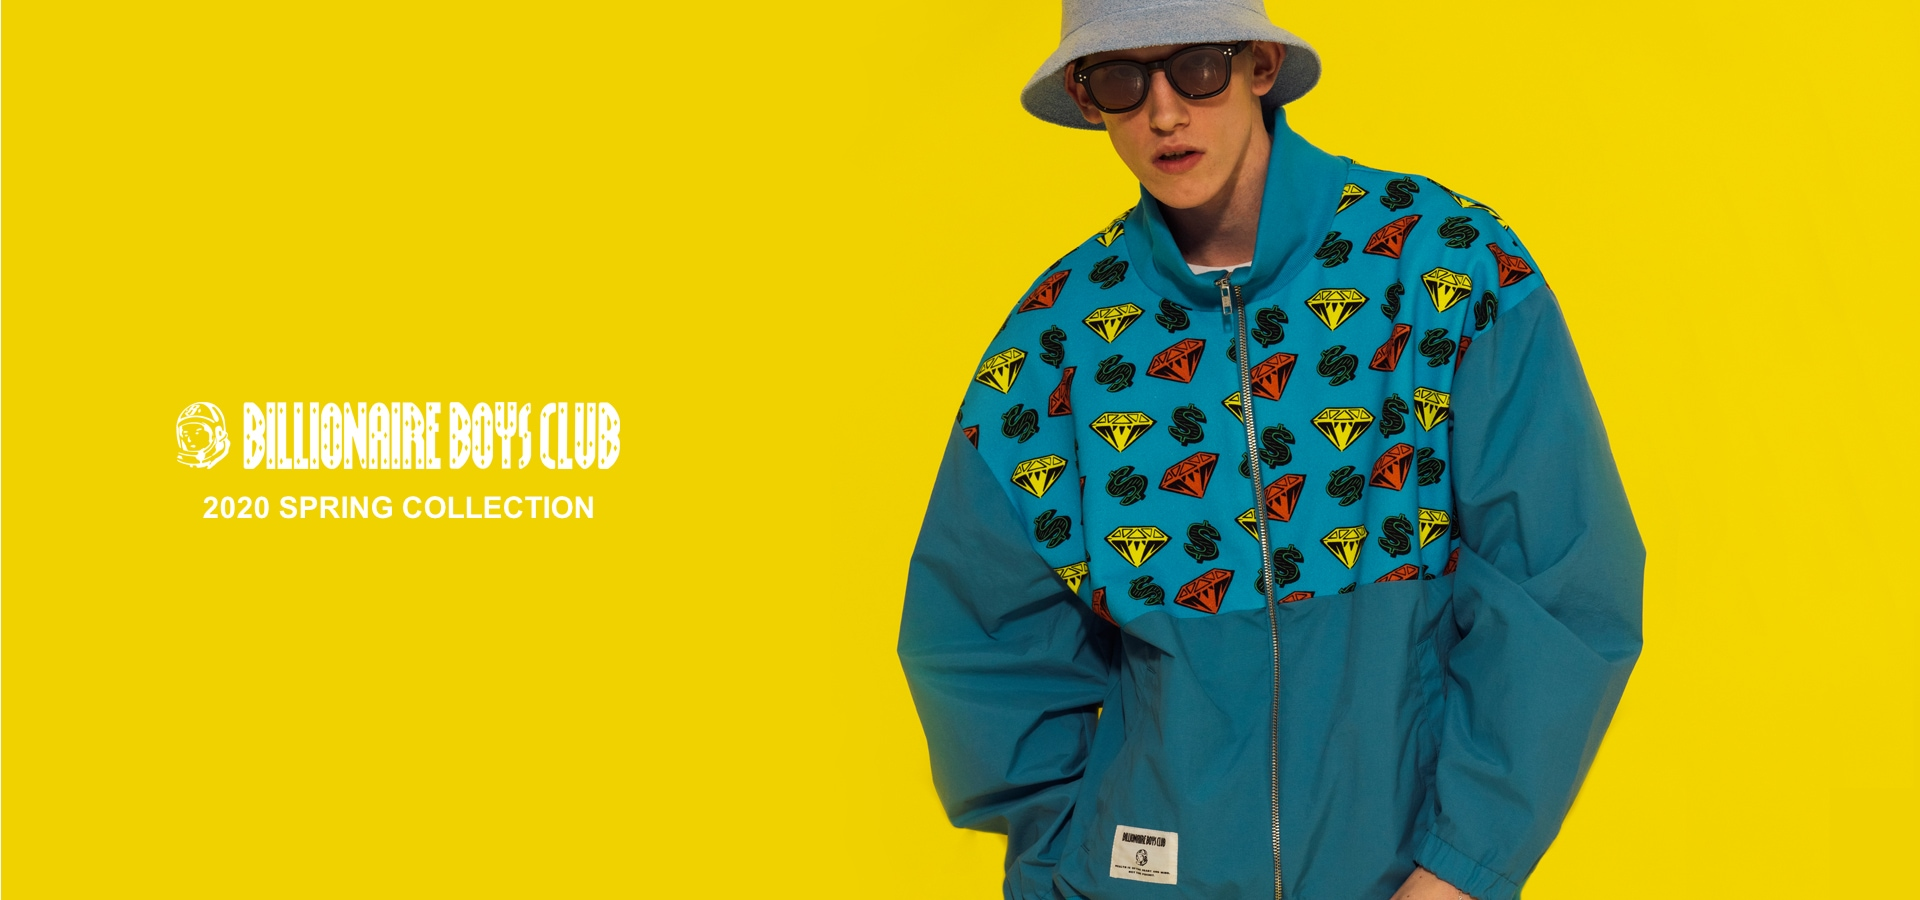 BILLIONAIRE BOYS CLUB 2020 SPRING